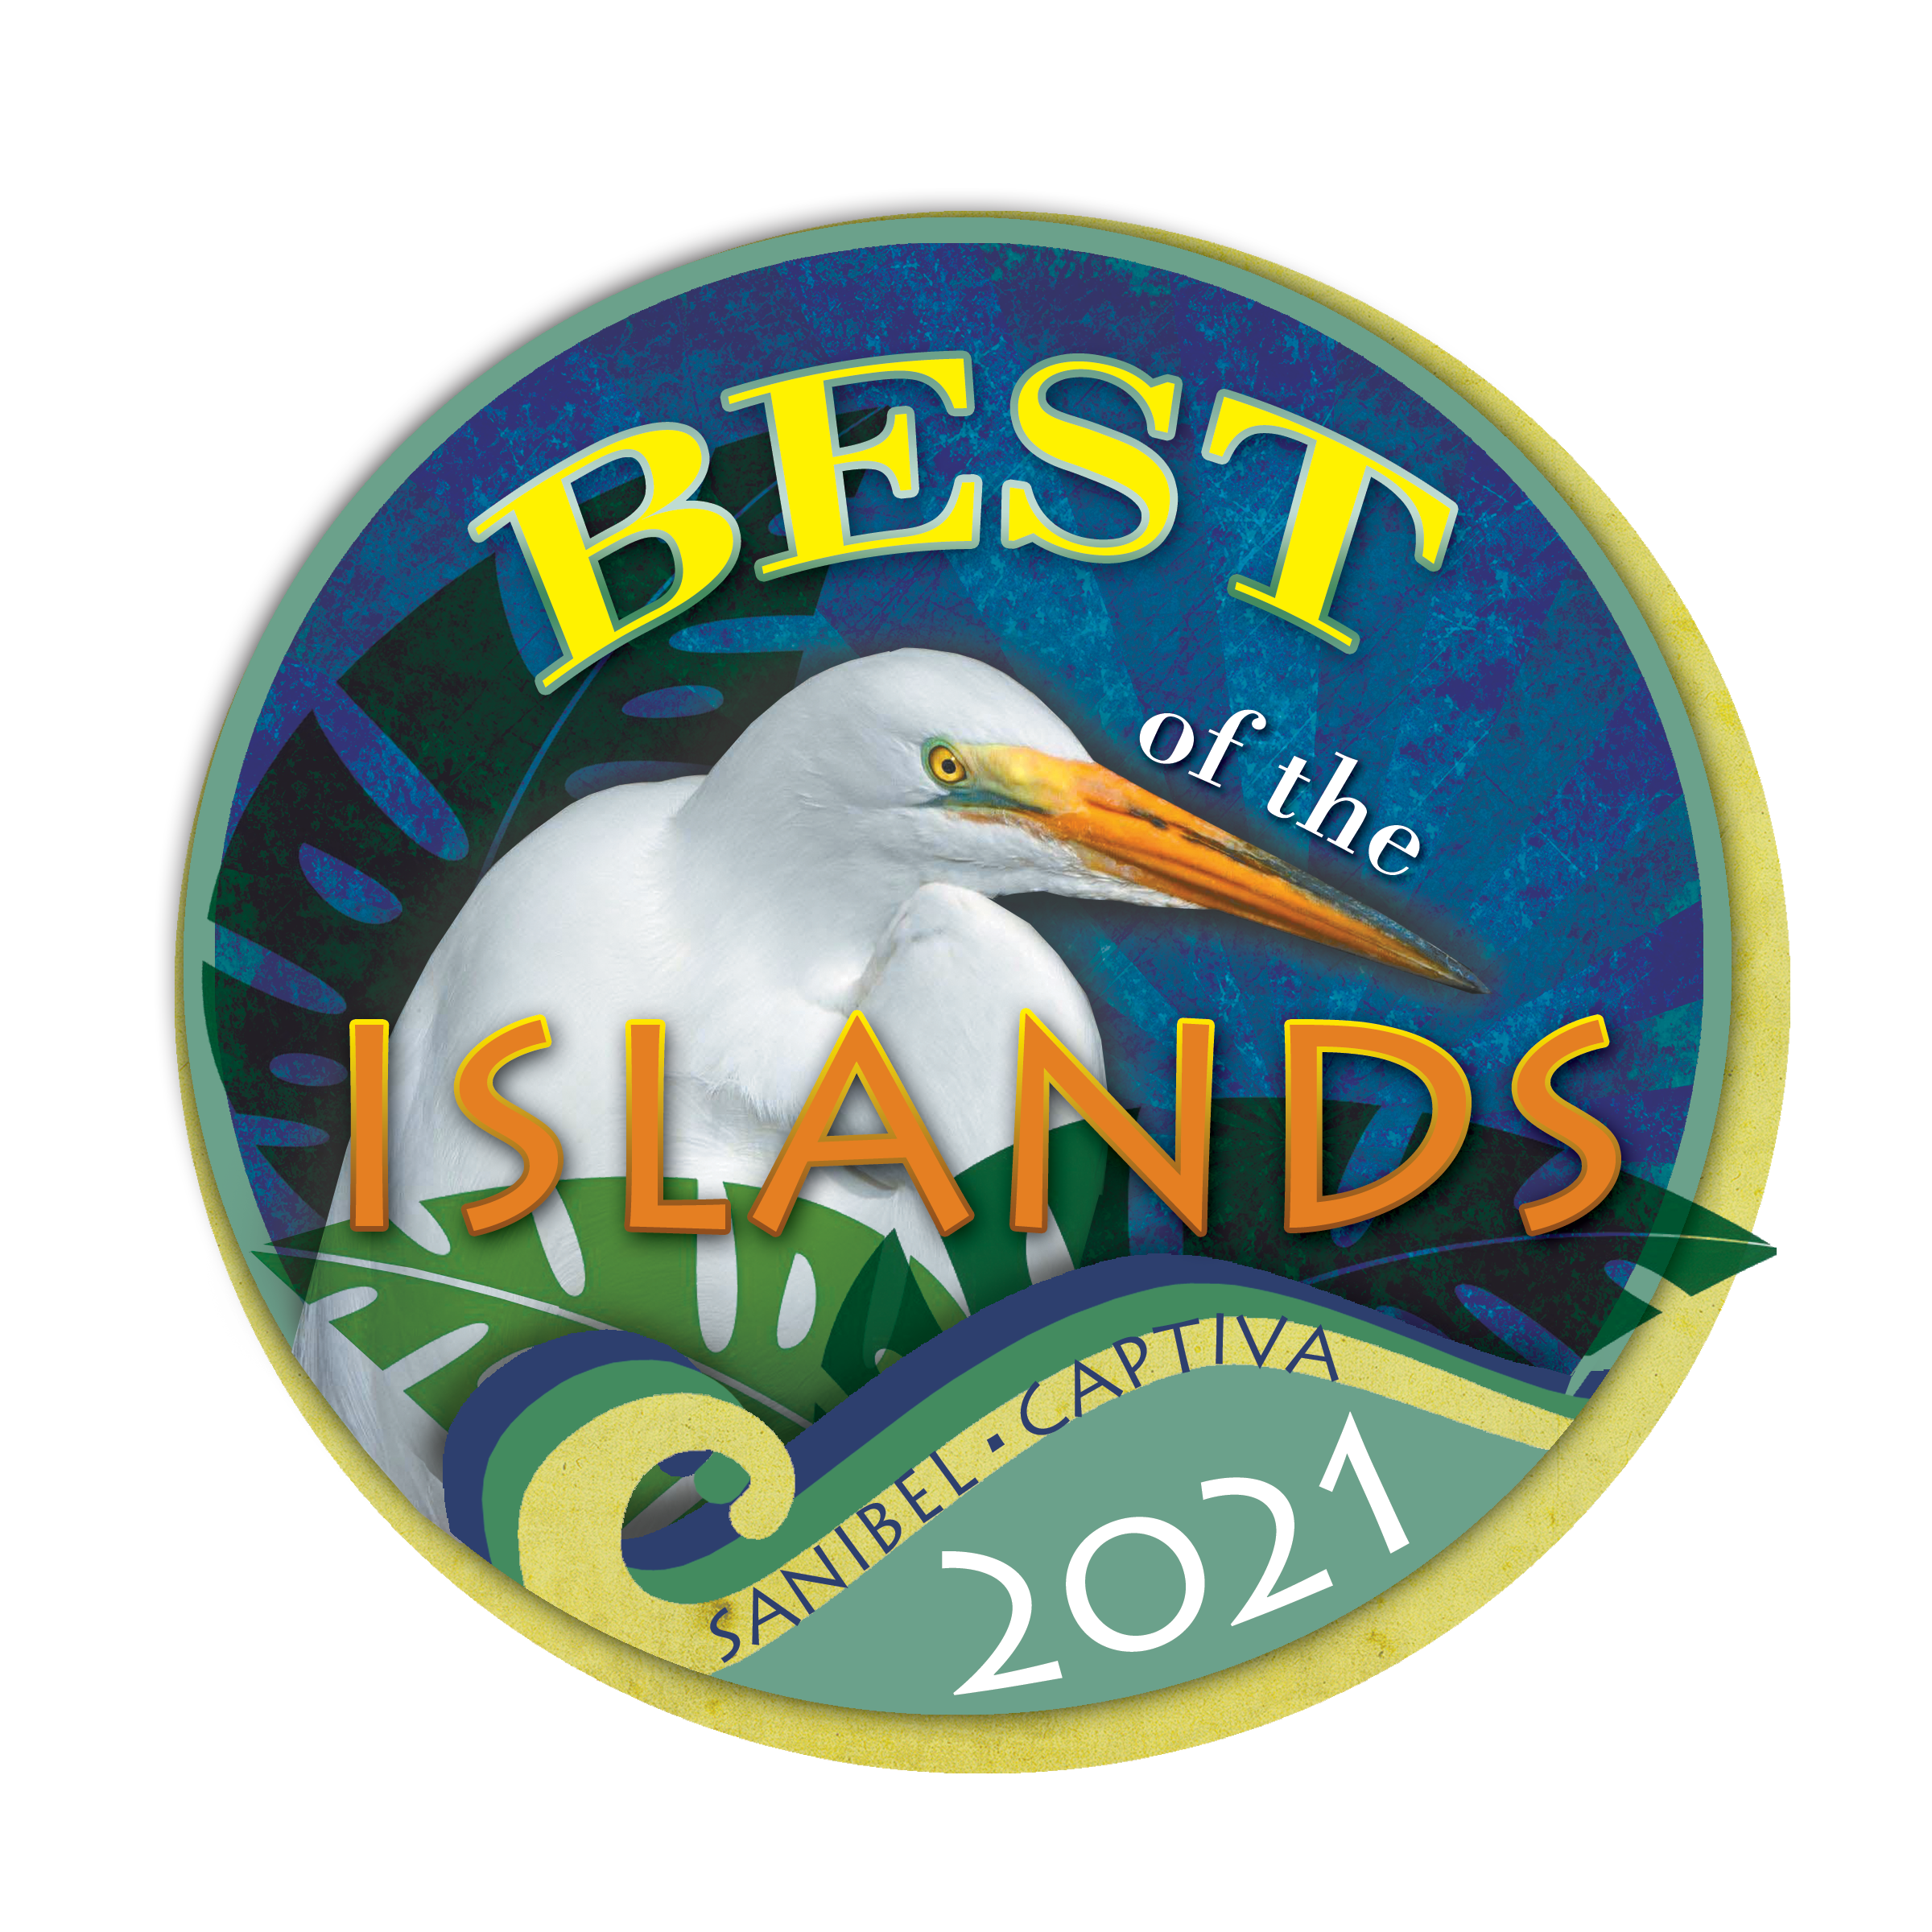 Best of the Sanibel and Captiva - The Bell Team Best Realtor®